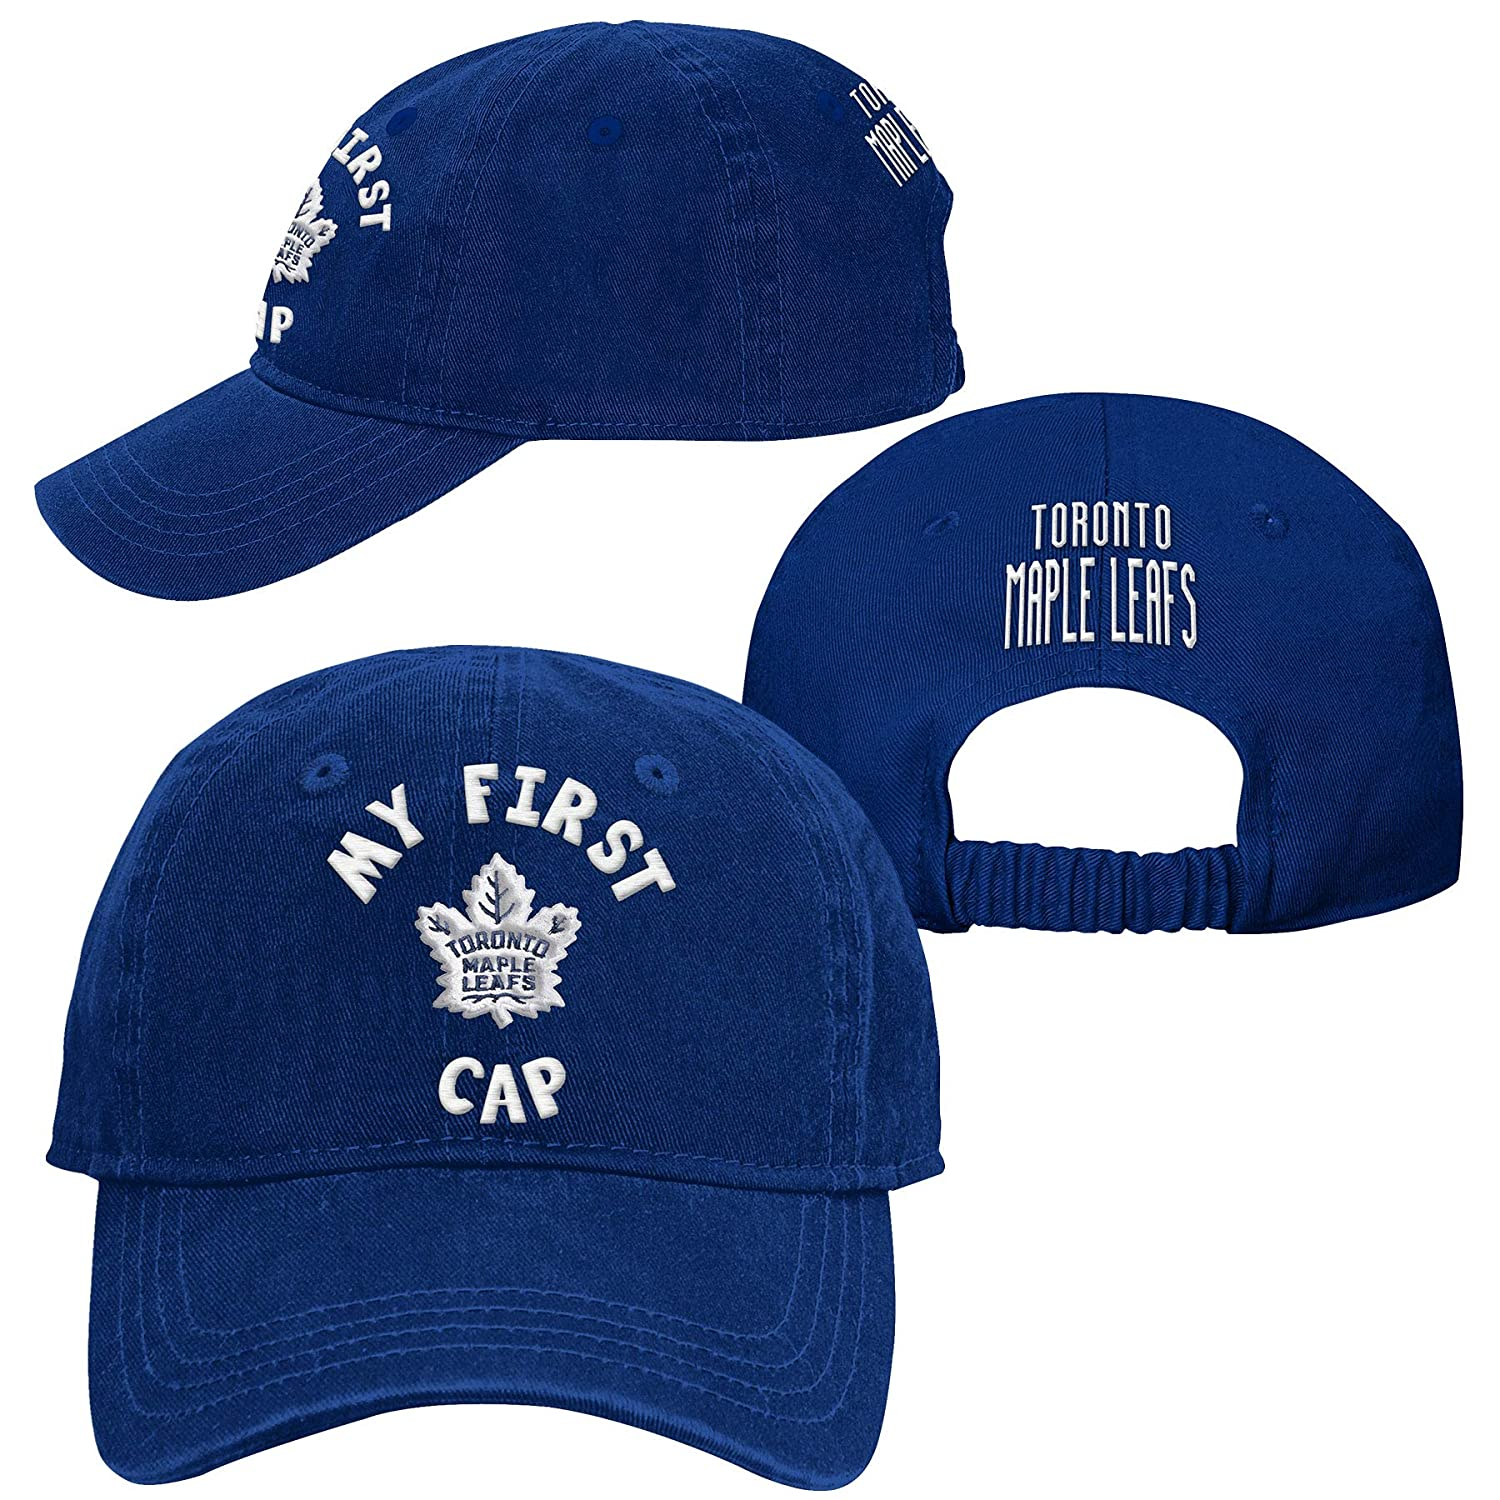 One Size Infant Toronto Maple Leafs Infant My First Cap